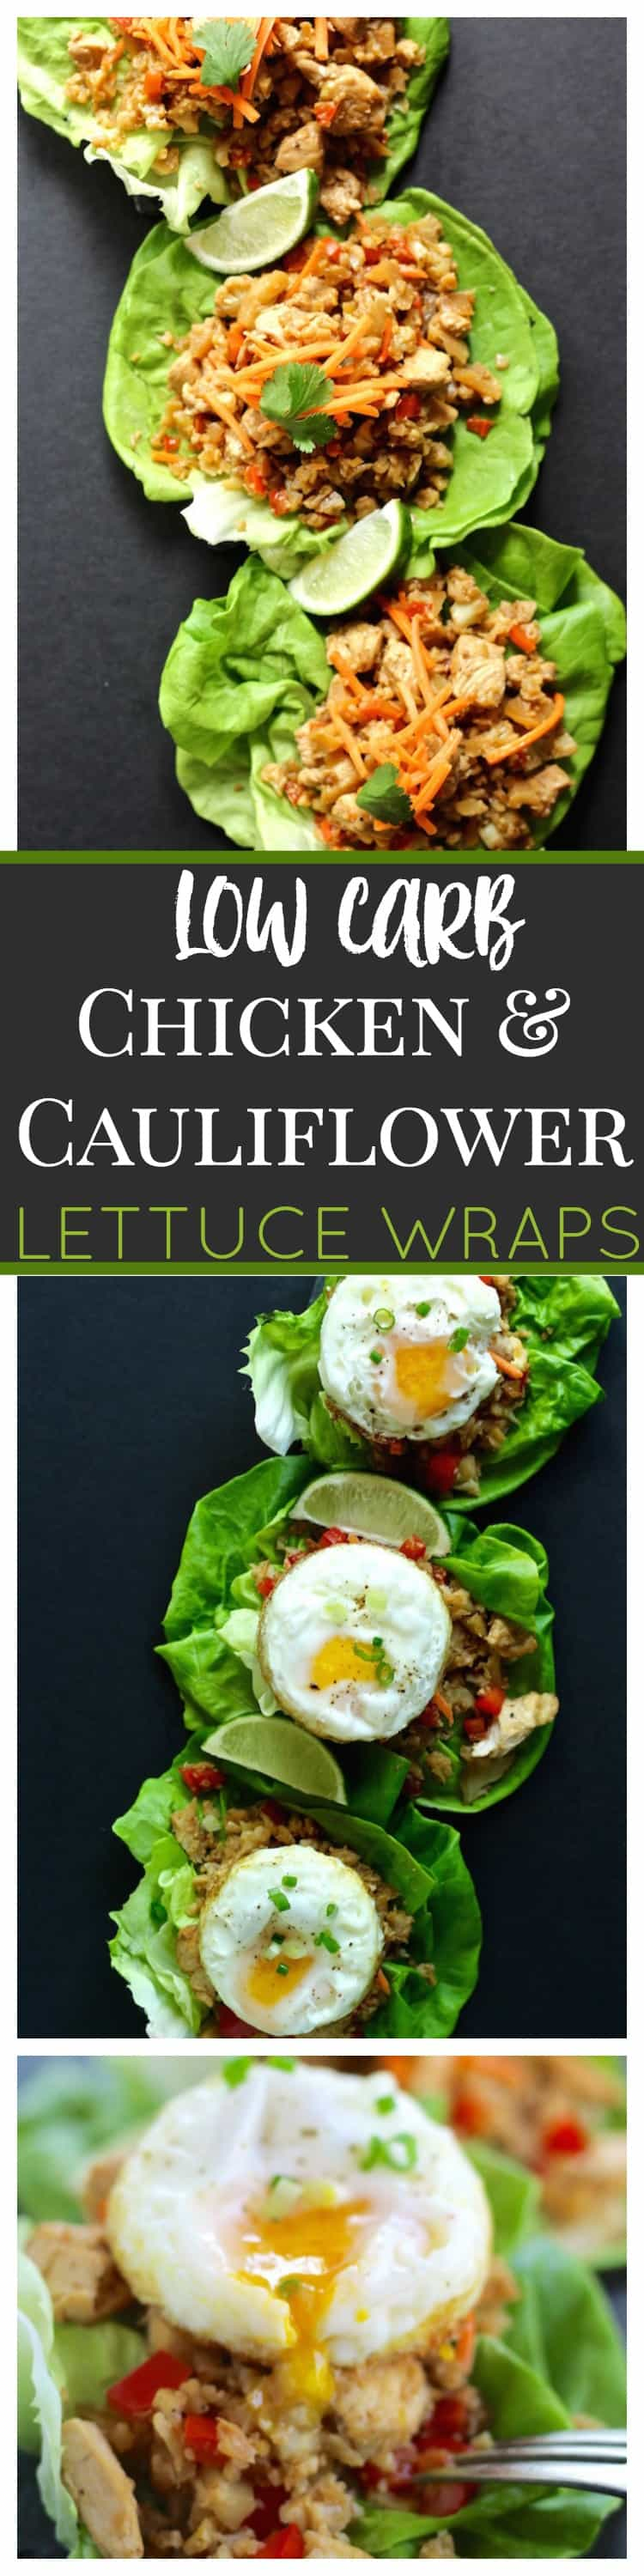 low carb chicken and cauliflower lettuce wraps